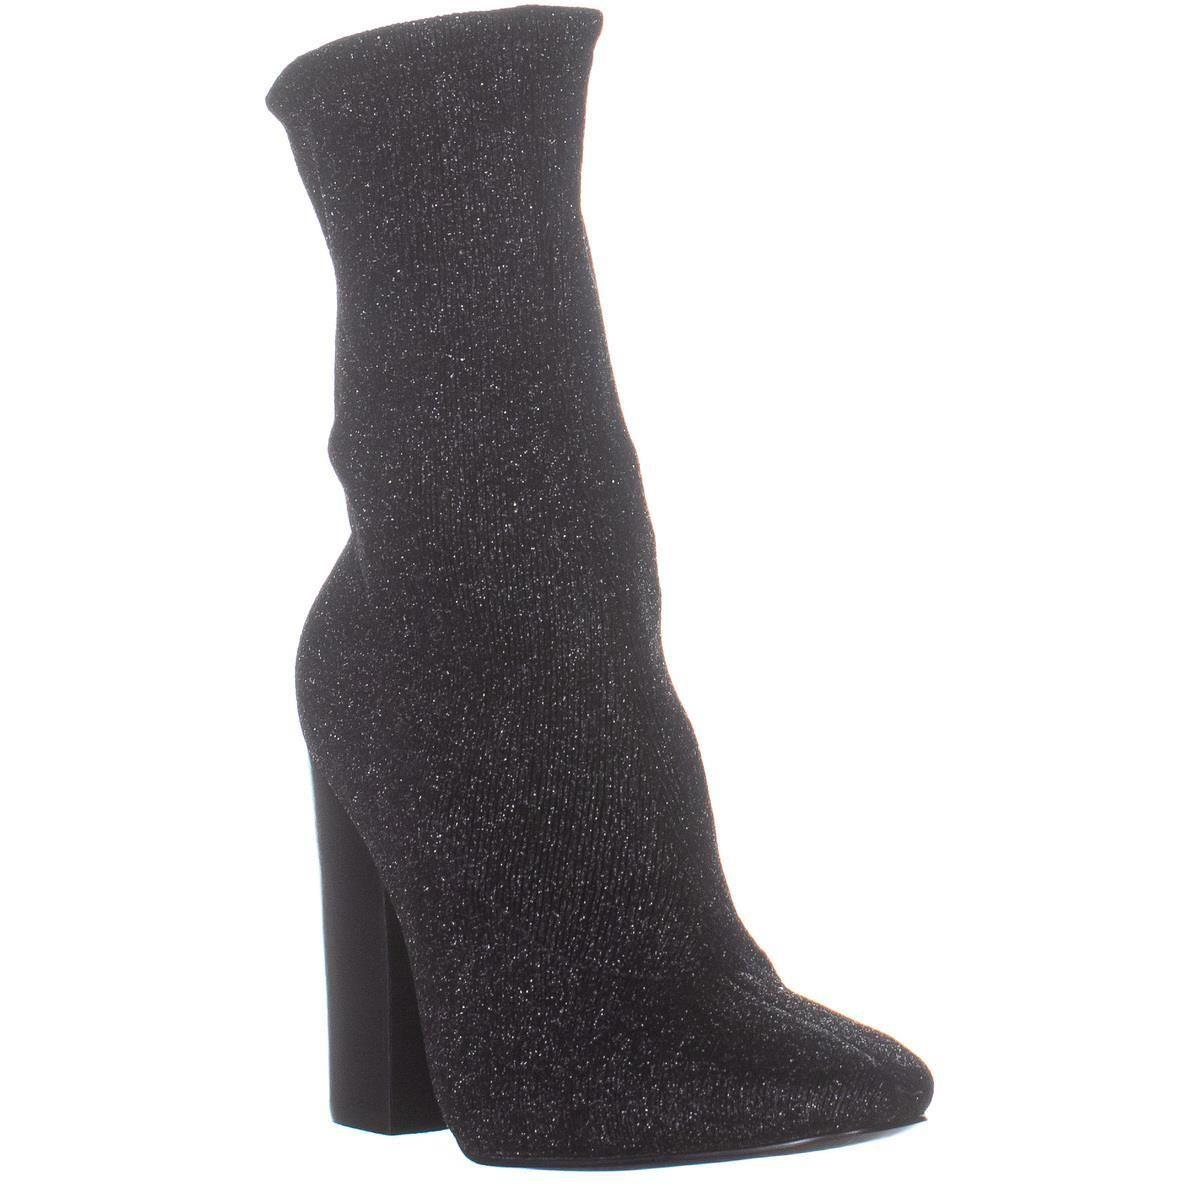 2a8b263ff Kendall + Kylie Hailey4 Sock Boots in Black - Lyst